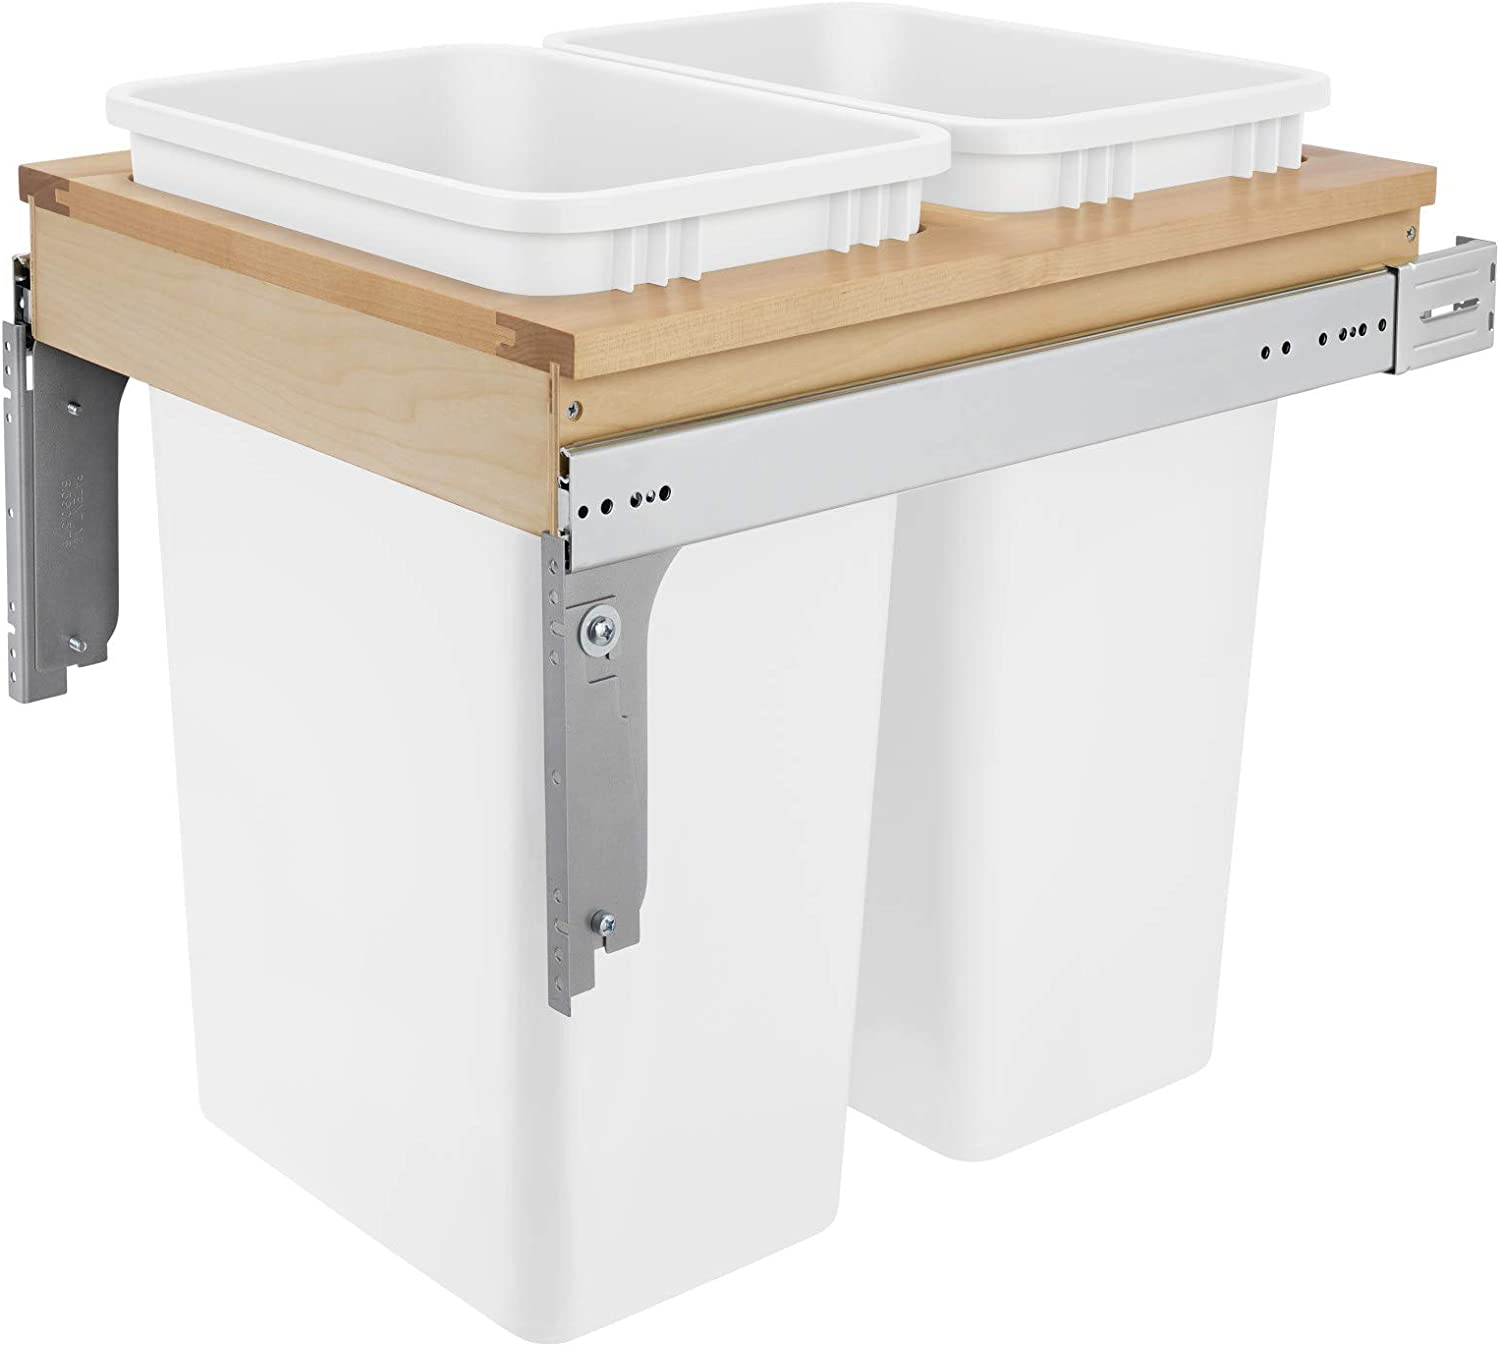 Double Safety and trust 50 Quart Max 46% OFF Waste Pull-Out Container